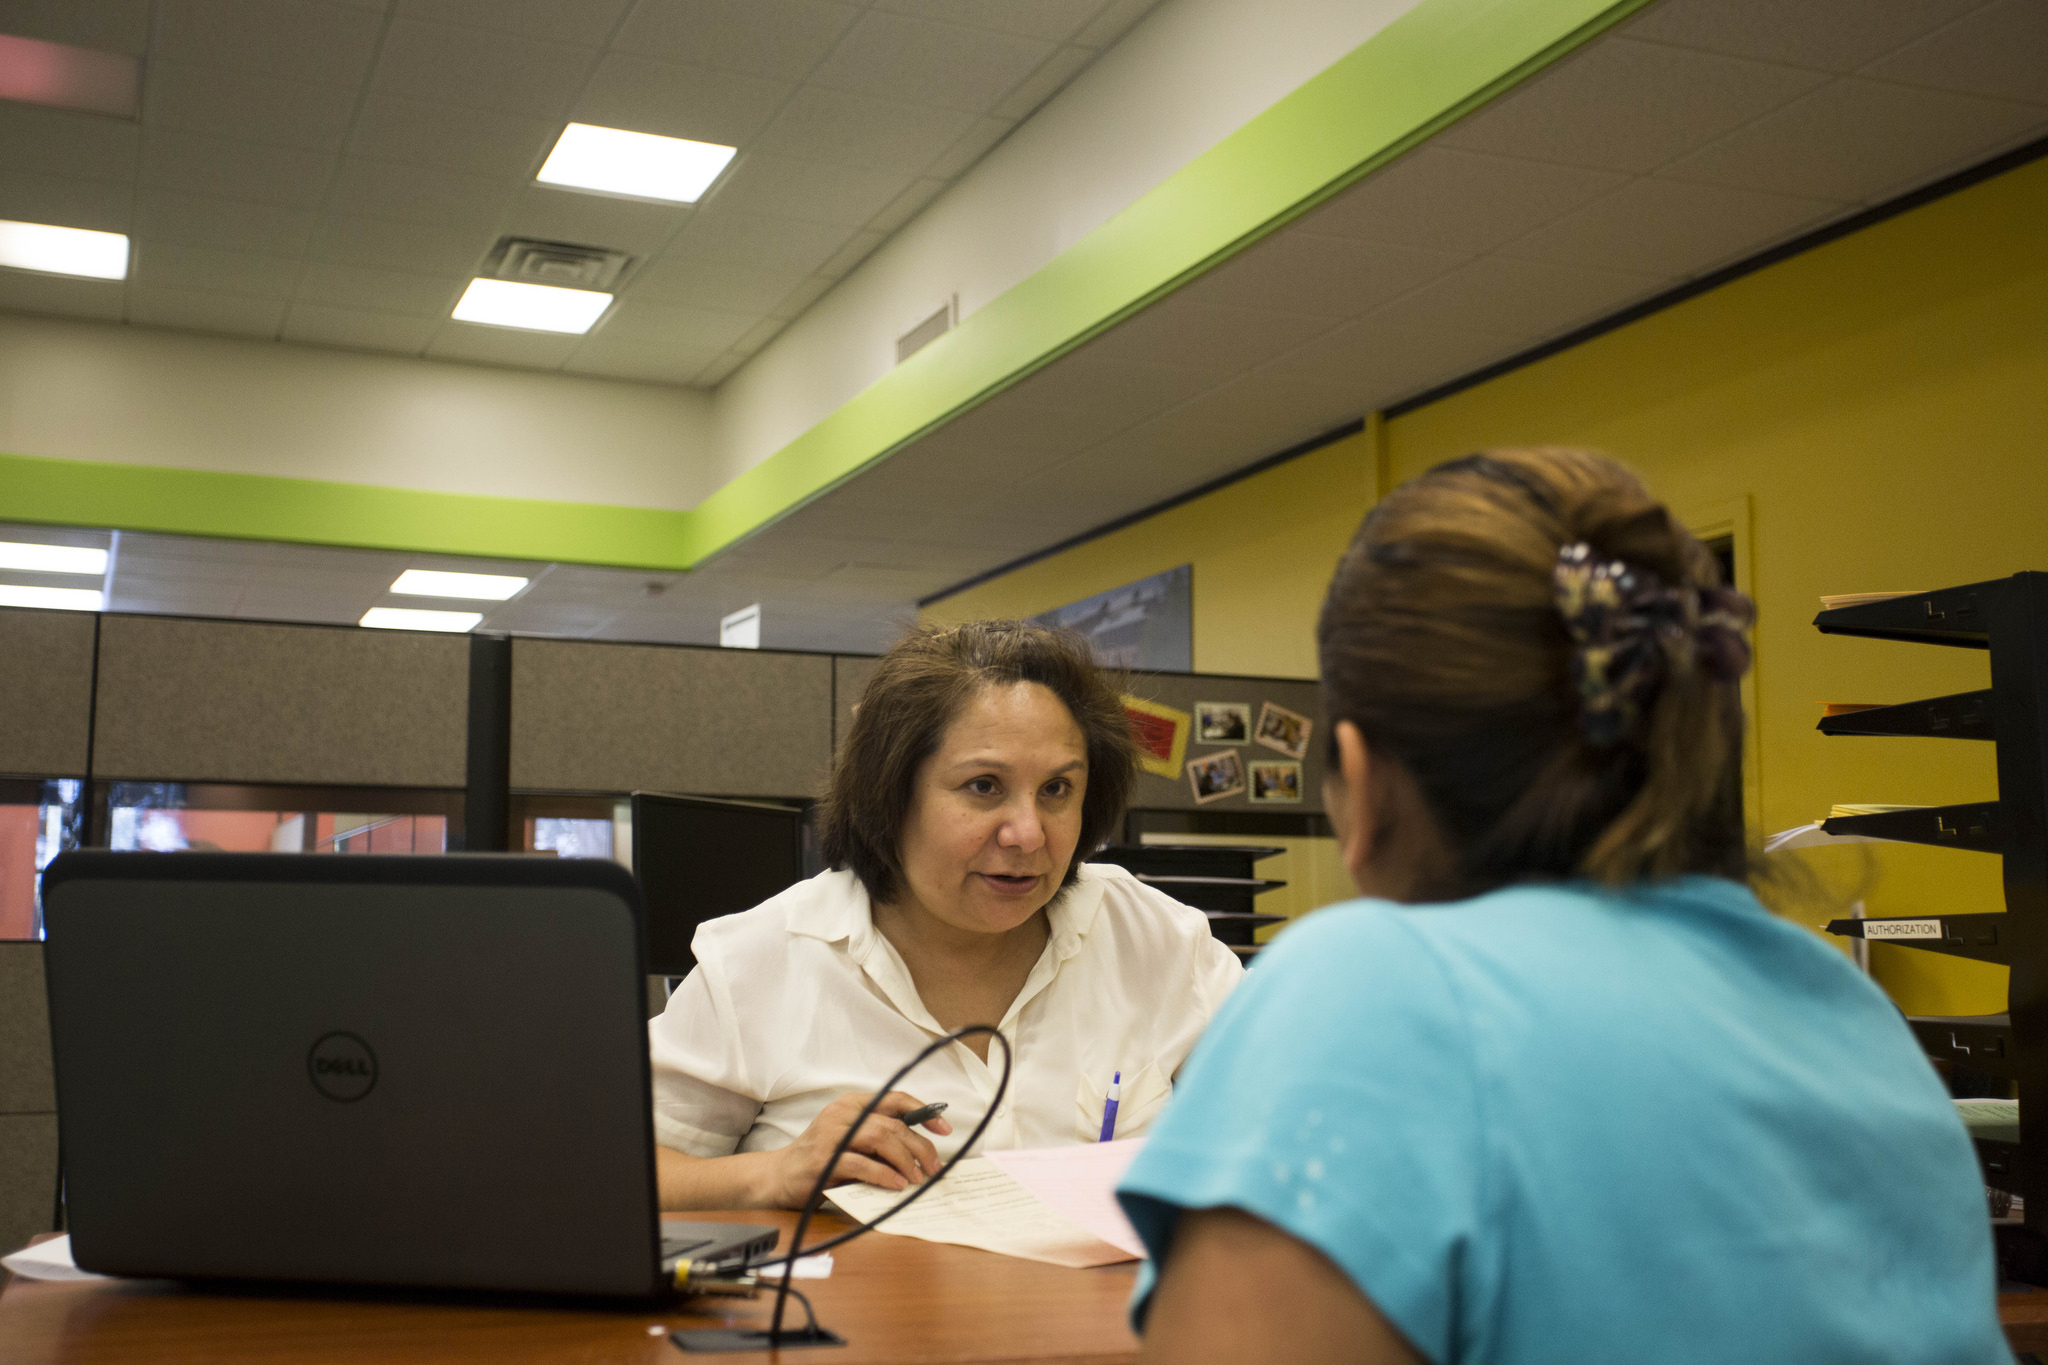 Nora Cadena, of Insure Central Texas at Foundation Communities, assists with enrollment in the Affordable Care Act at a Foundation Communities Community Tax Center in North Austin.